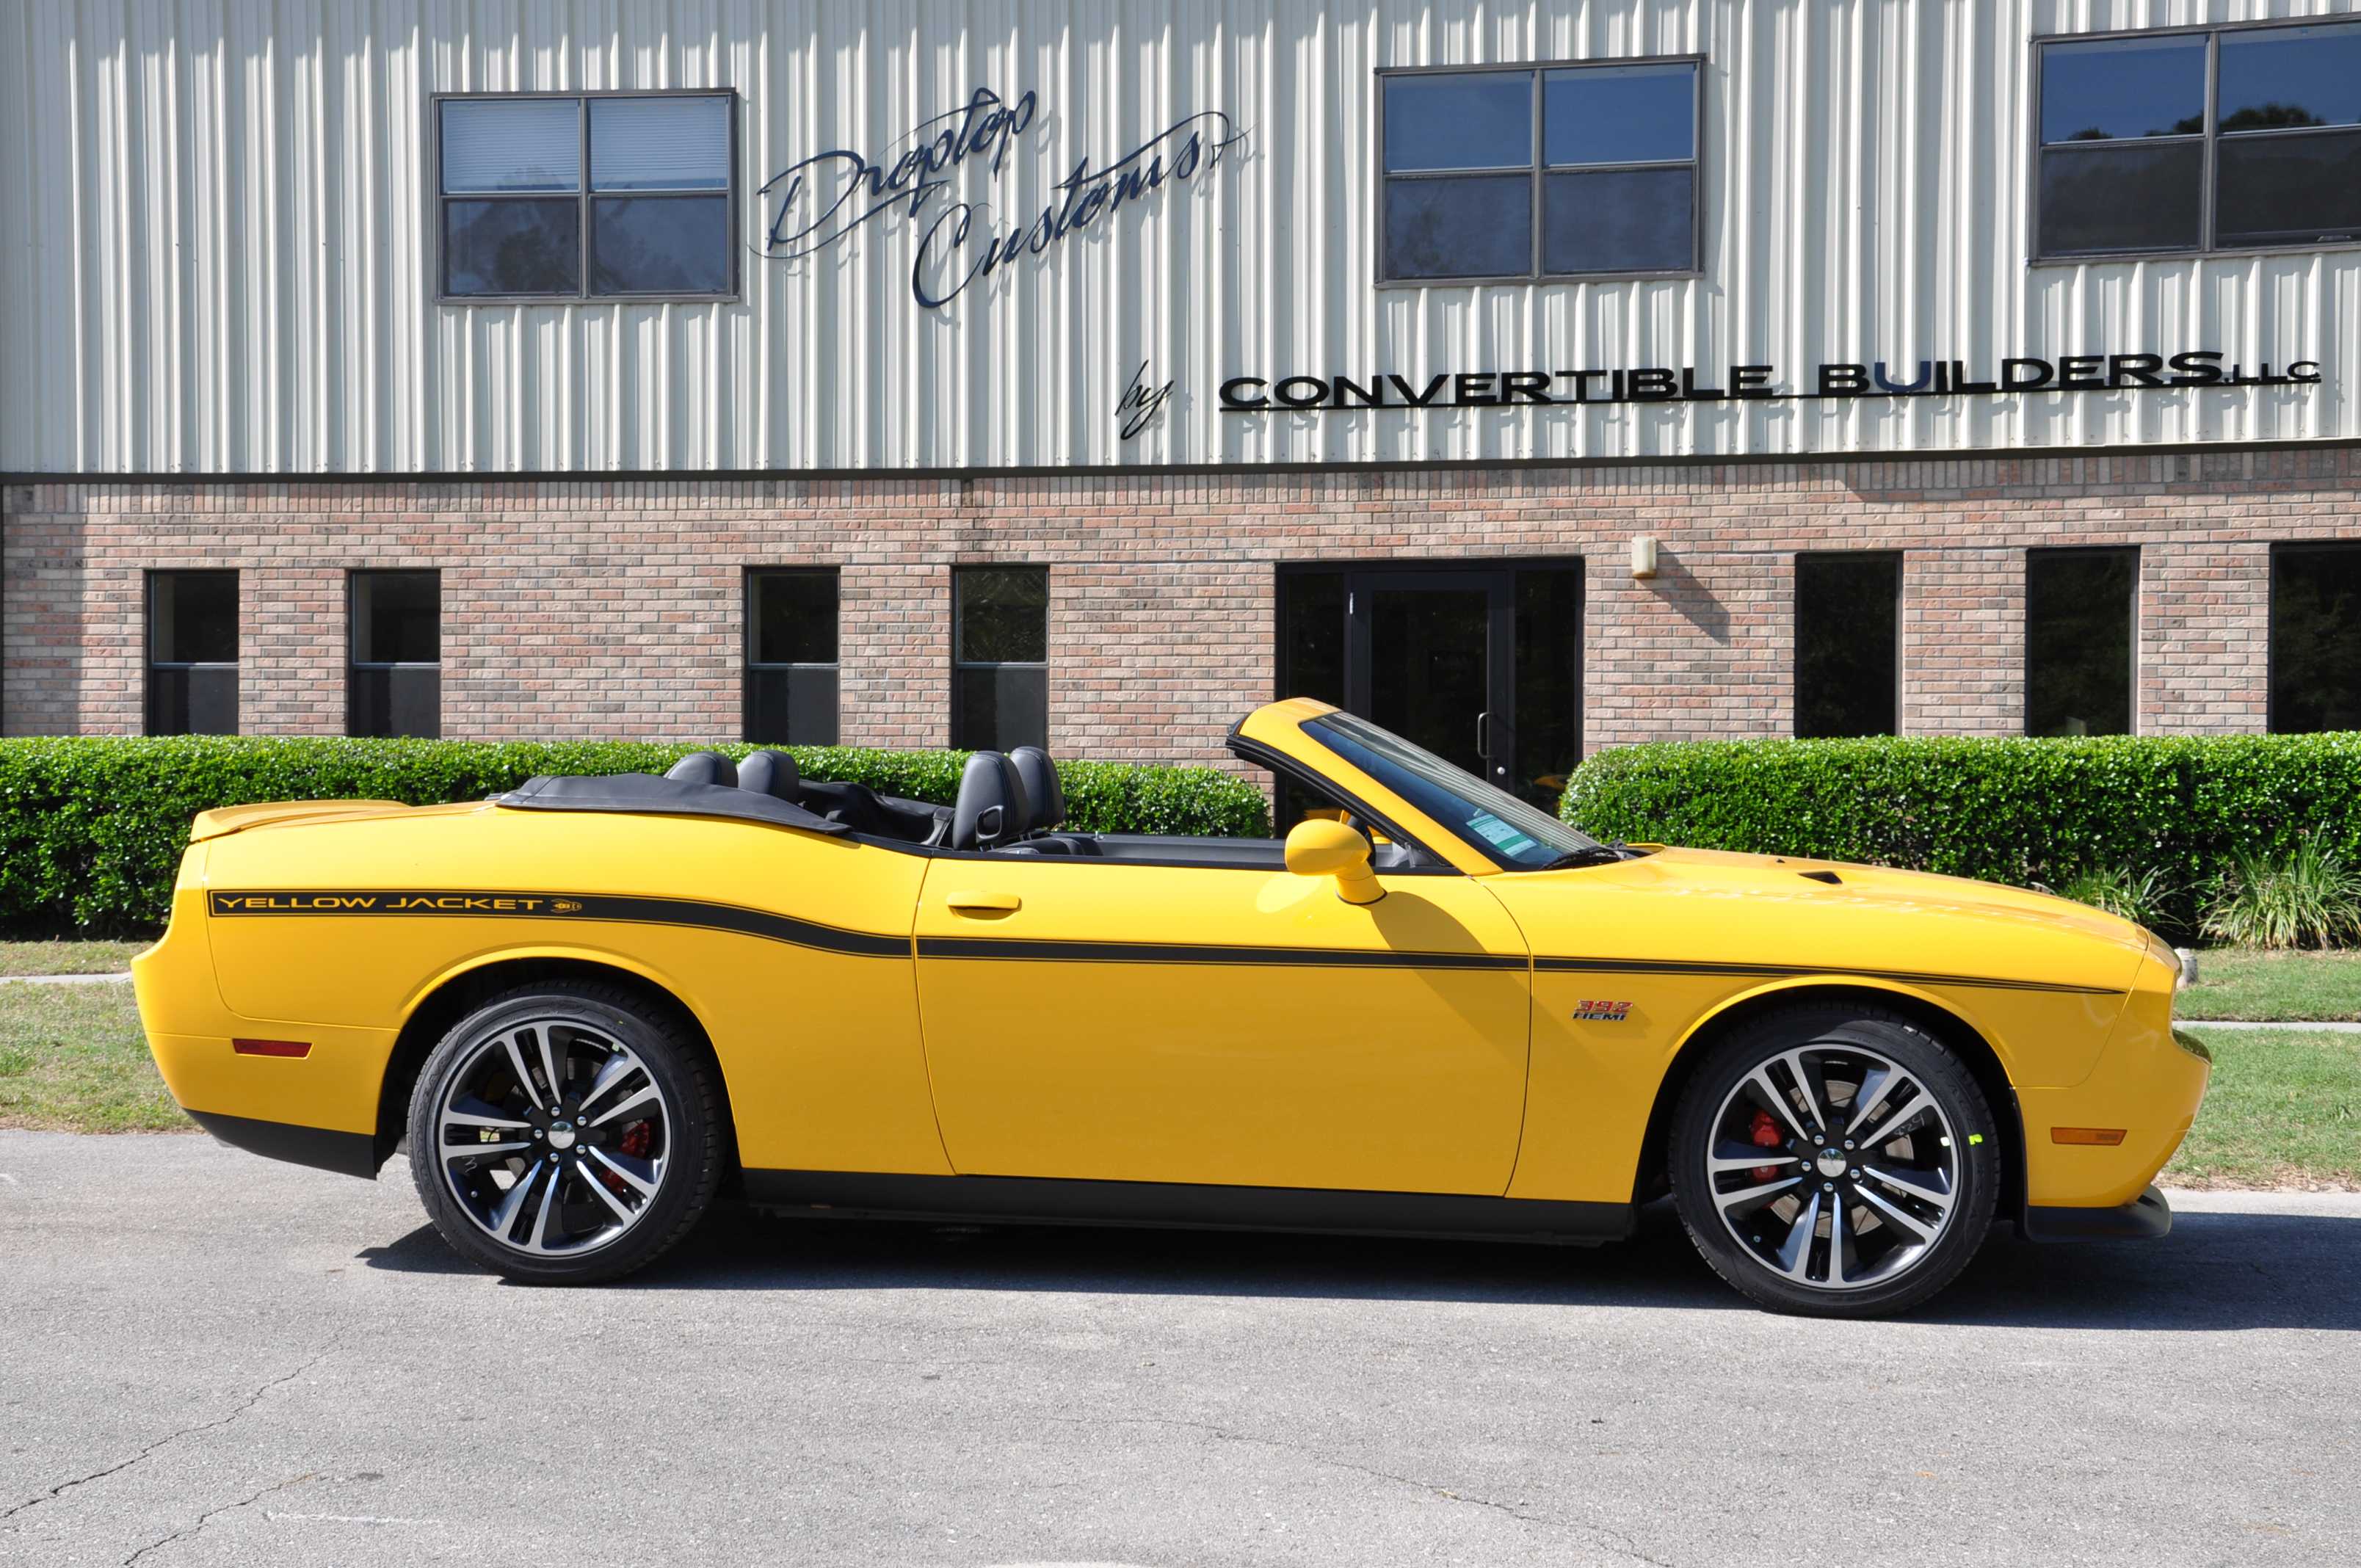 Dodge Challenger Convertible Yellow jacket top down